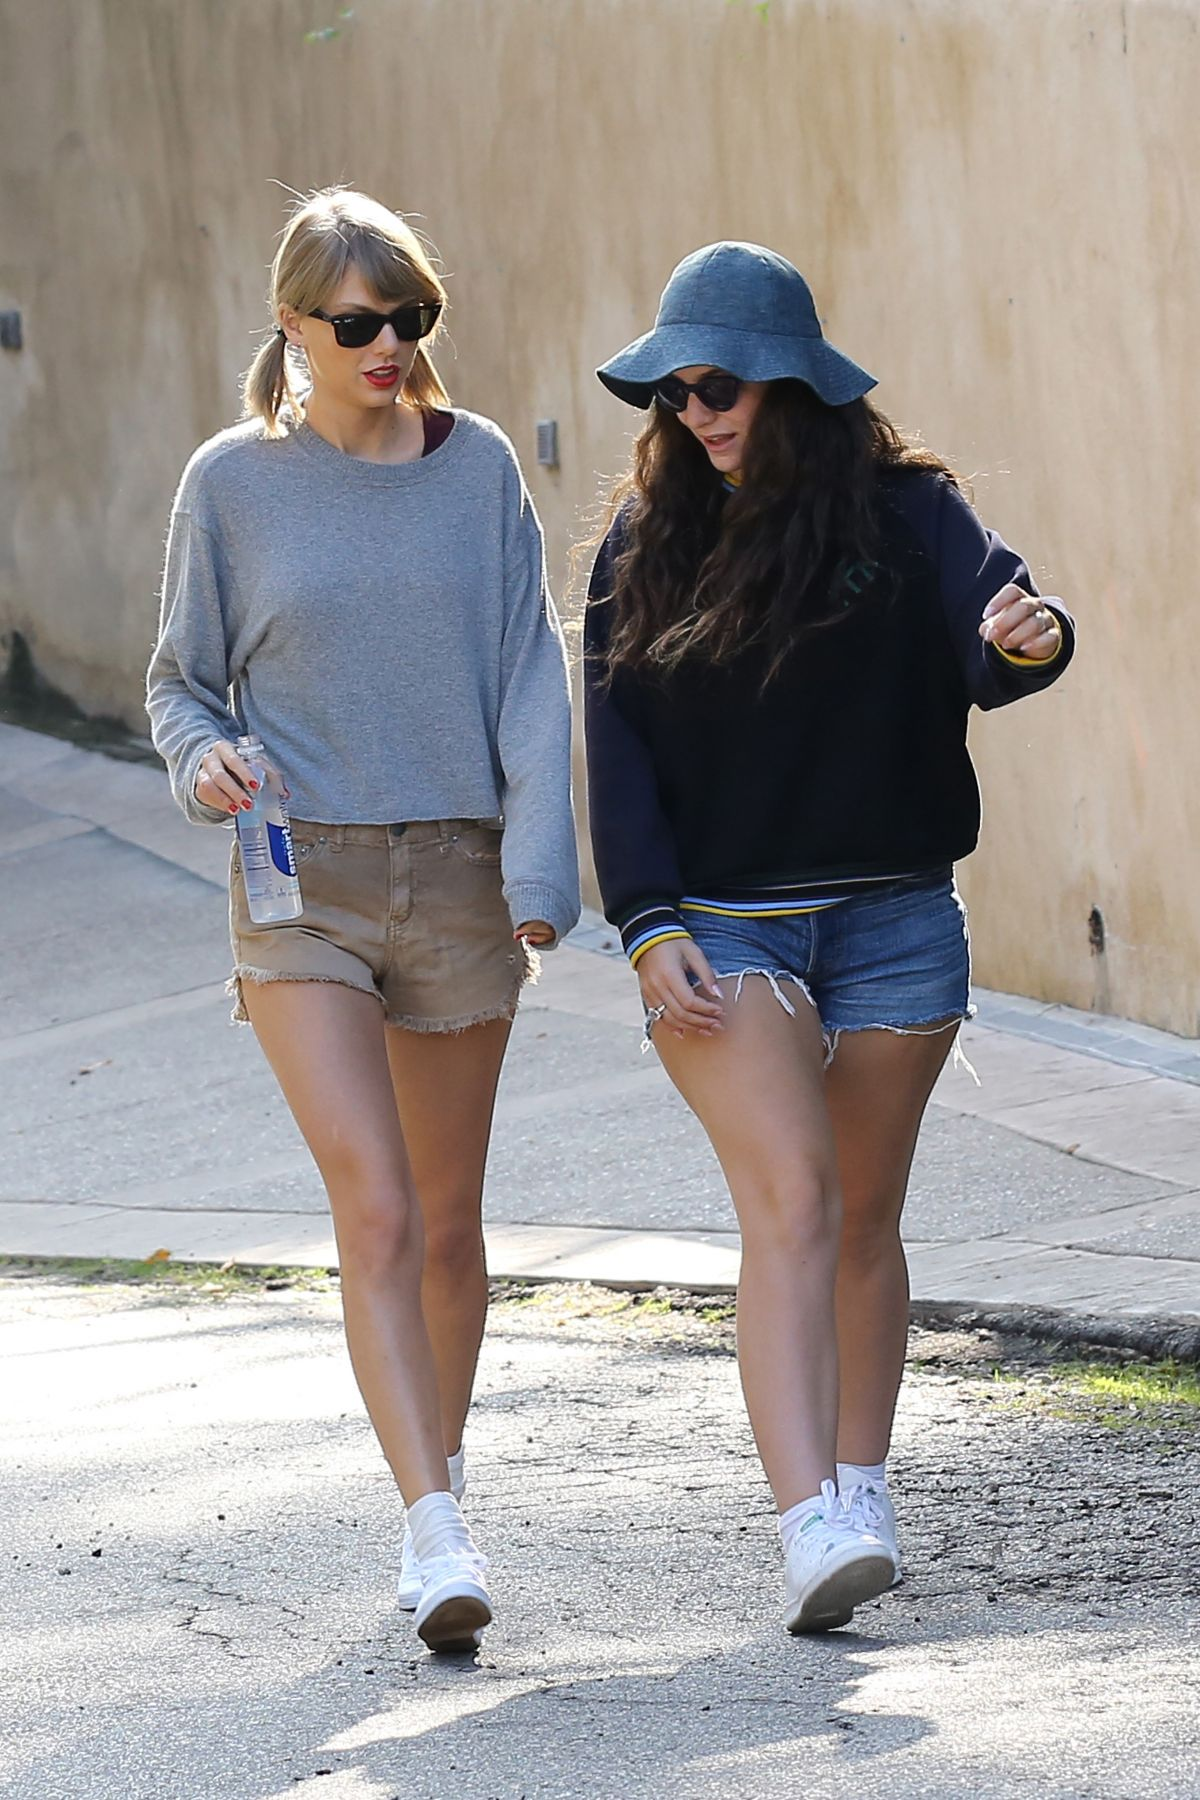 TAYLOR SWIFT and LORDE in Shorts Out Hiking in Los Angeles